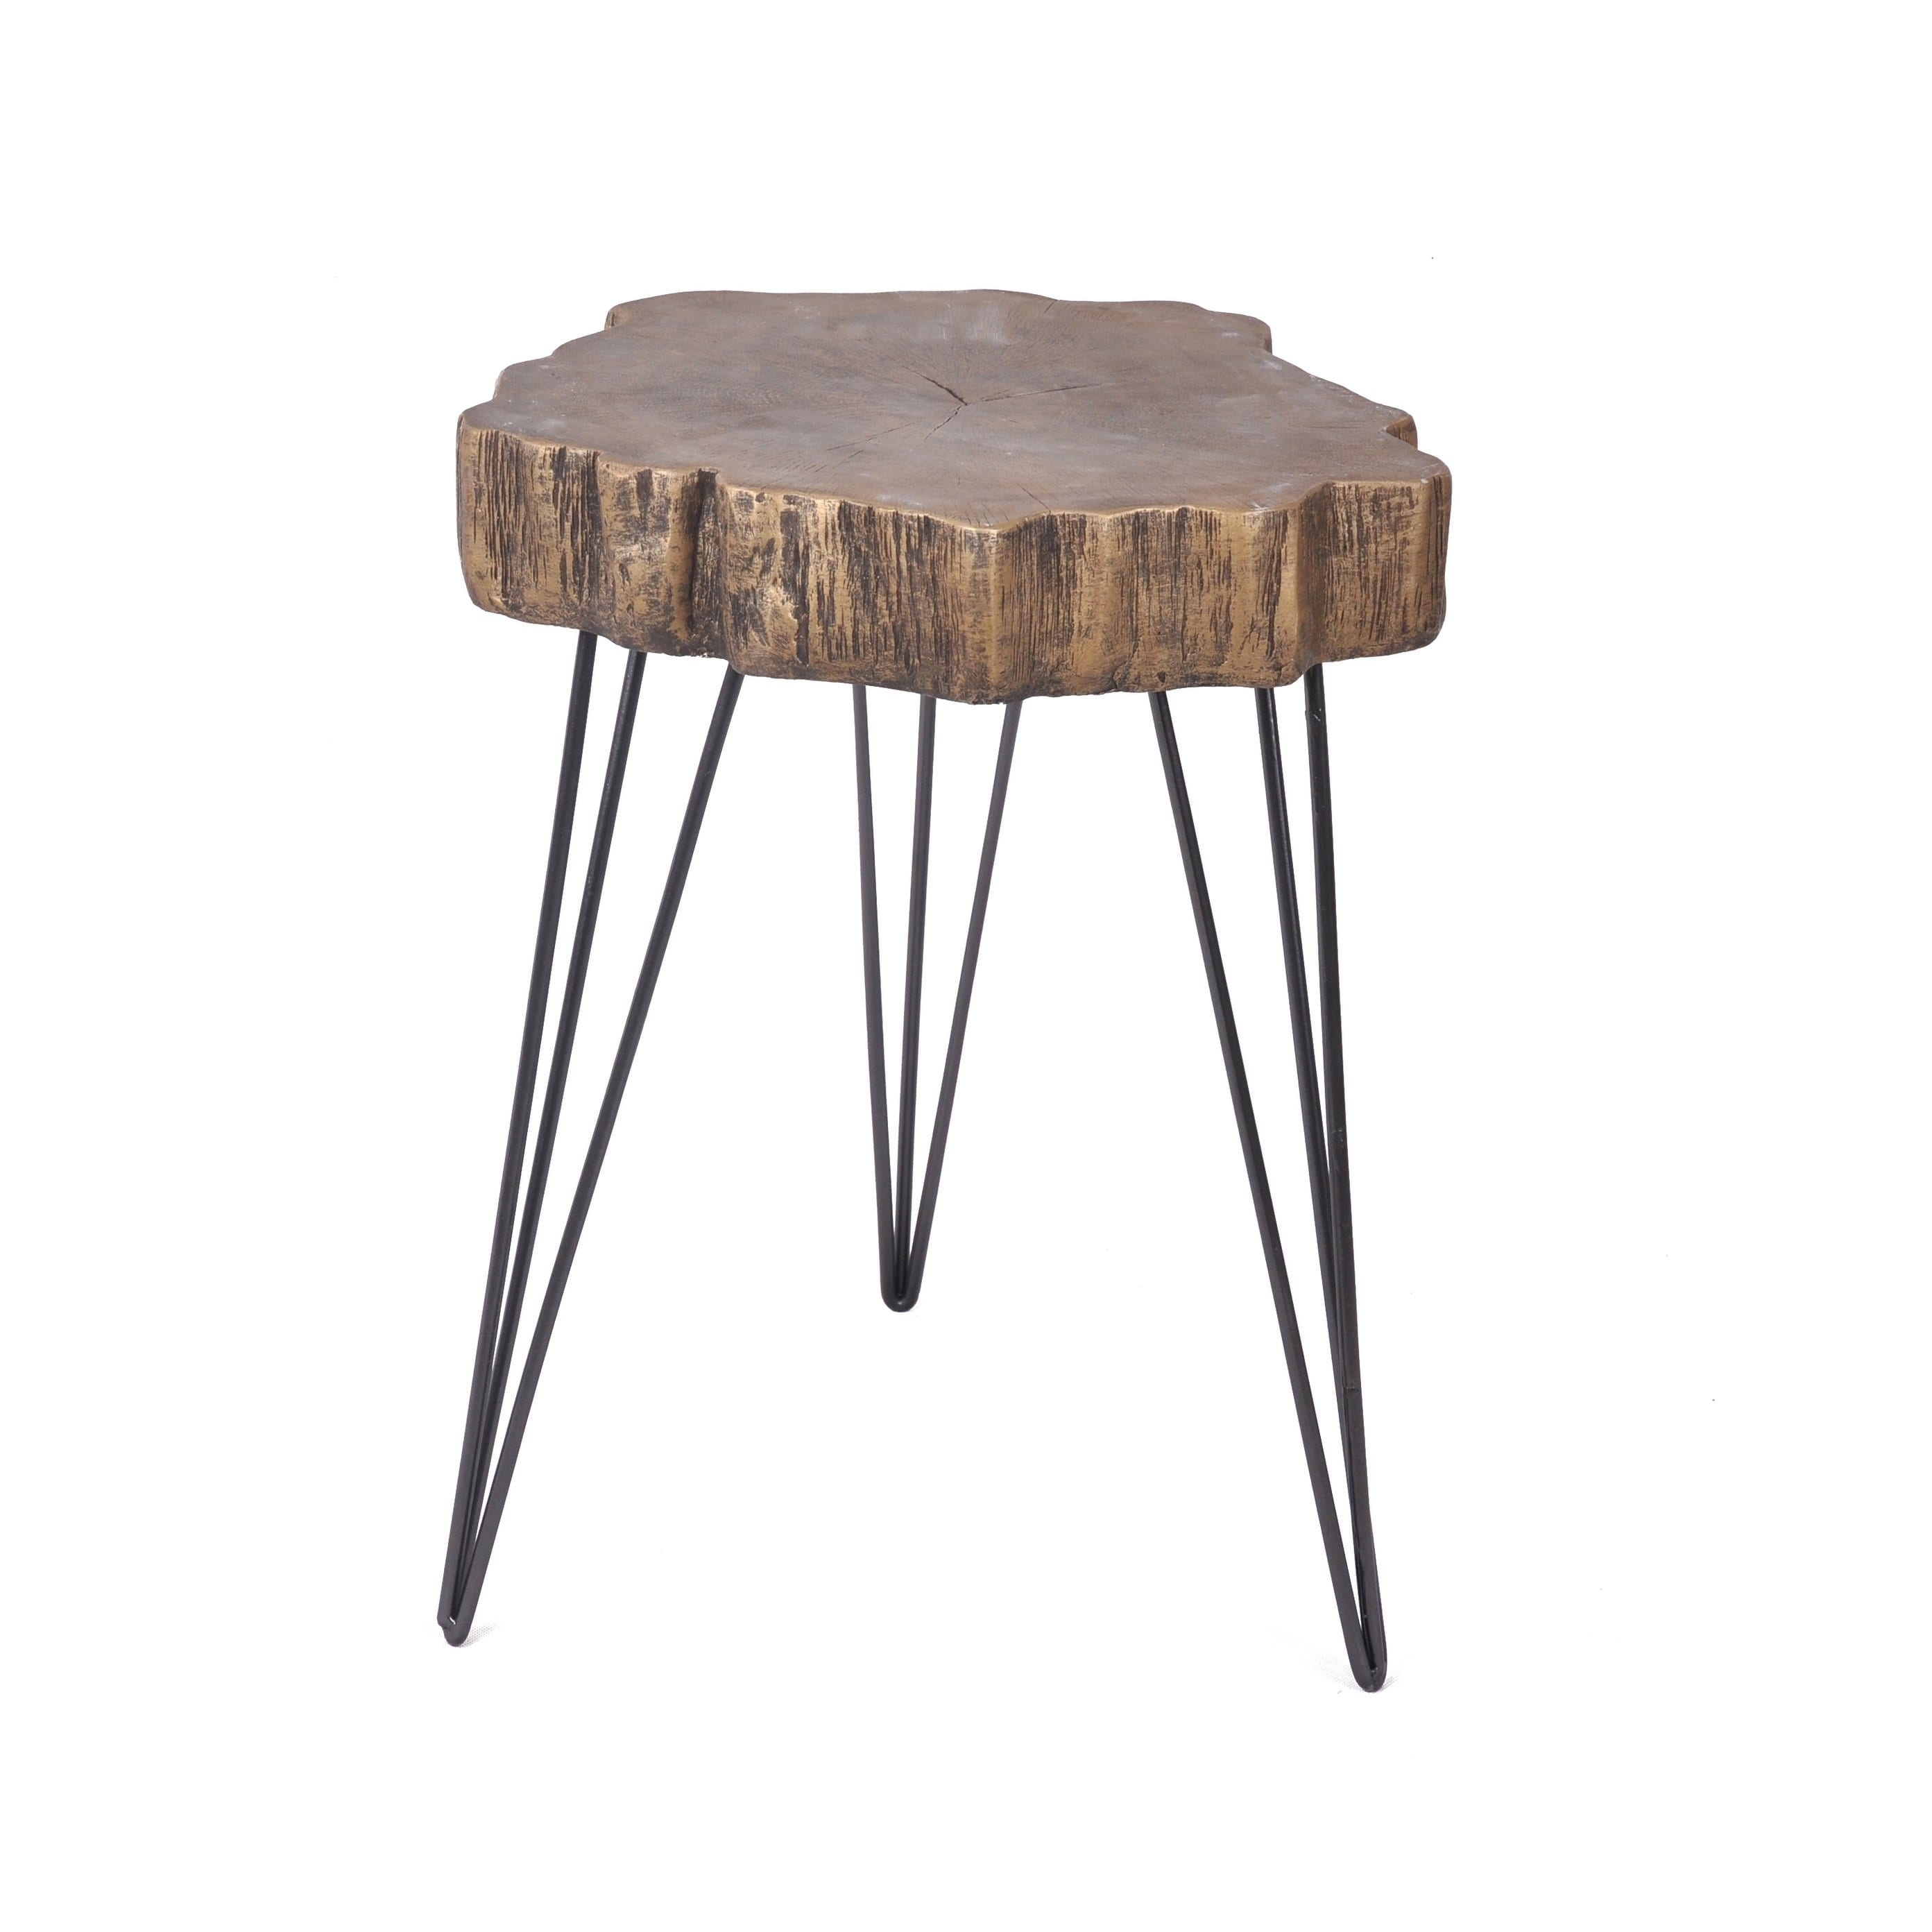 aurelle home live edge modern gold magnesium oxide accent table free shipping today beach chairs bunnings metal and wood round center cover inch silver occasional outdoor